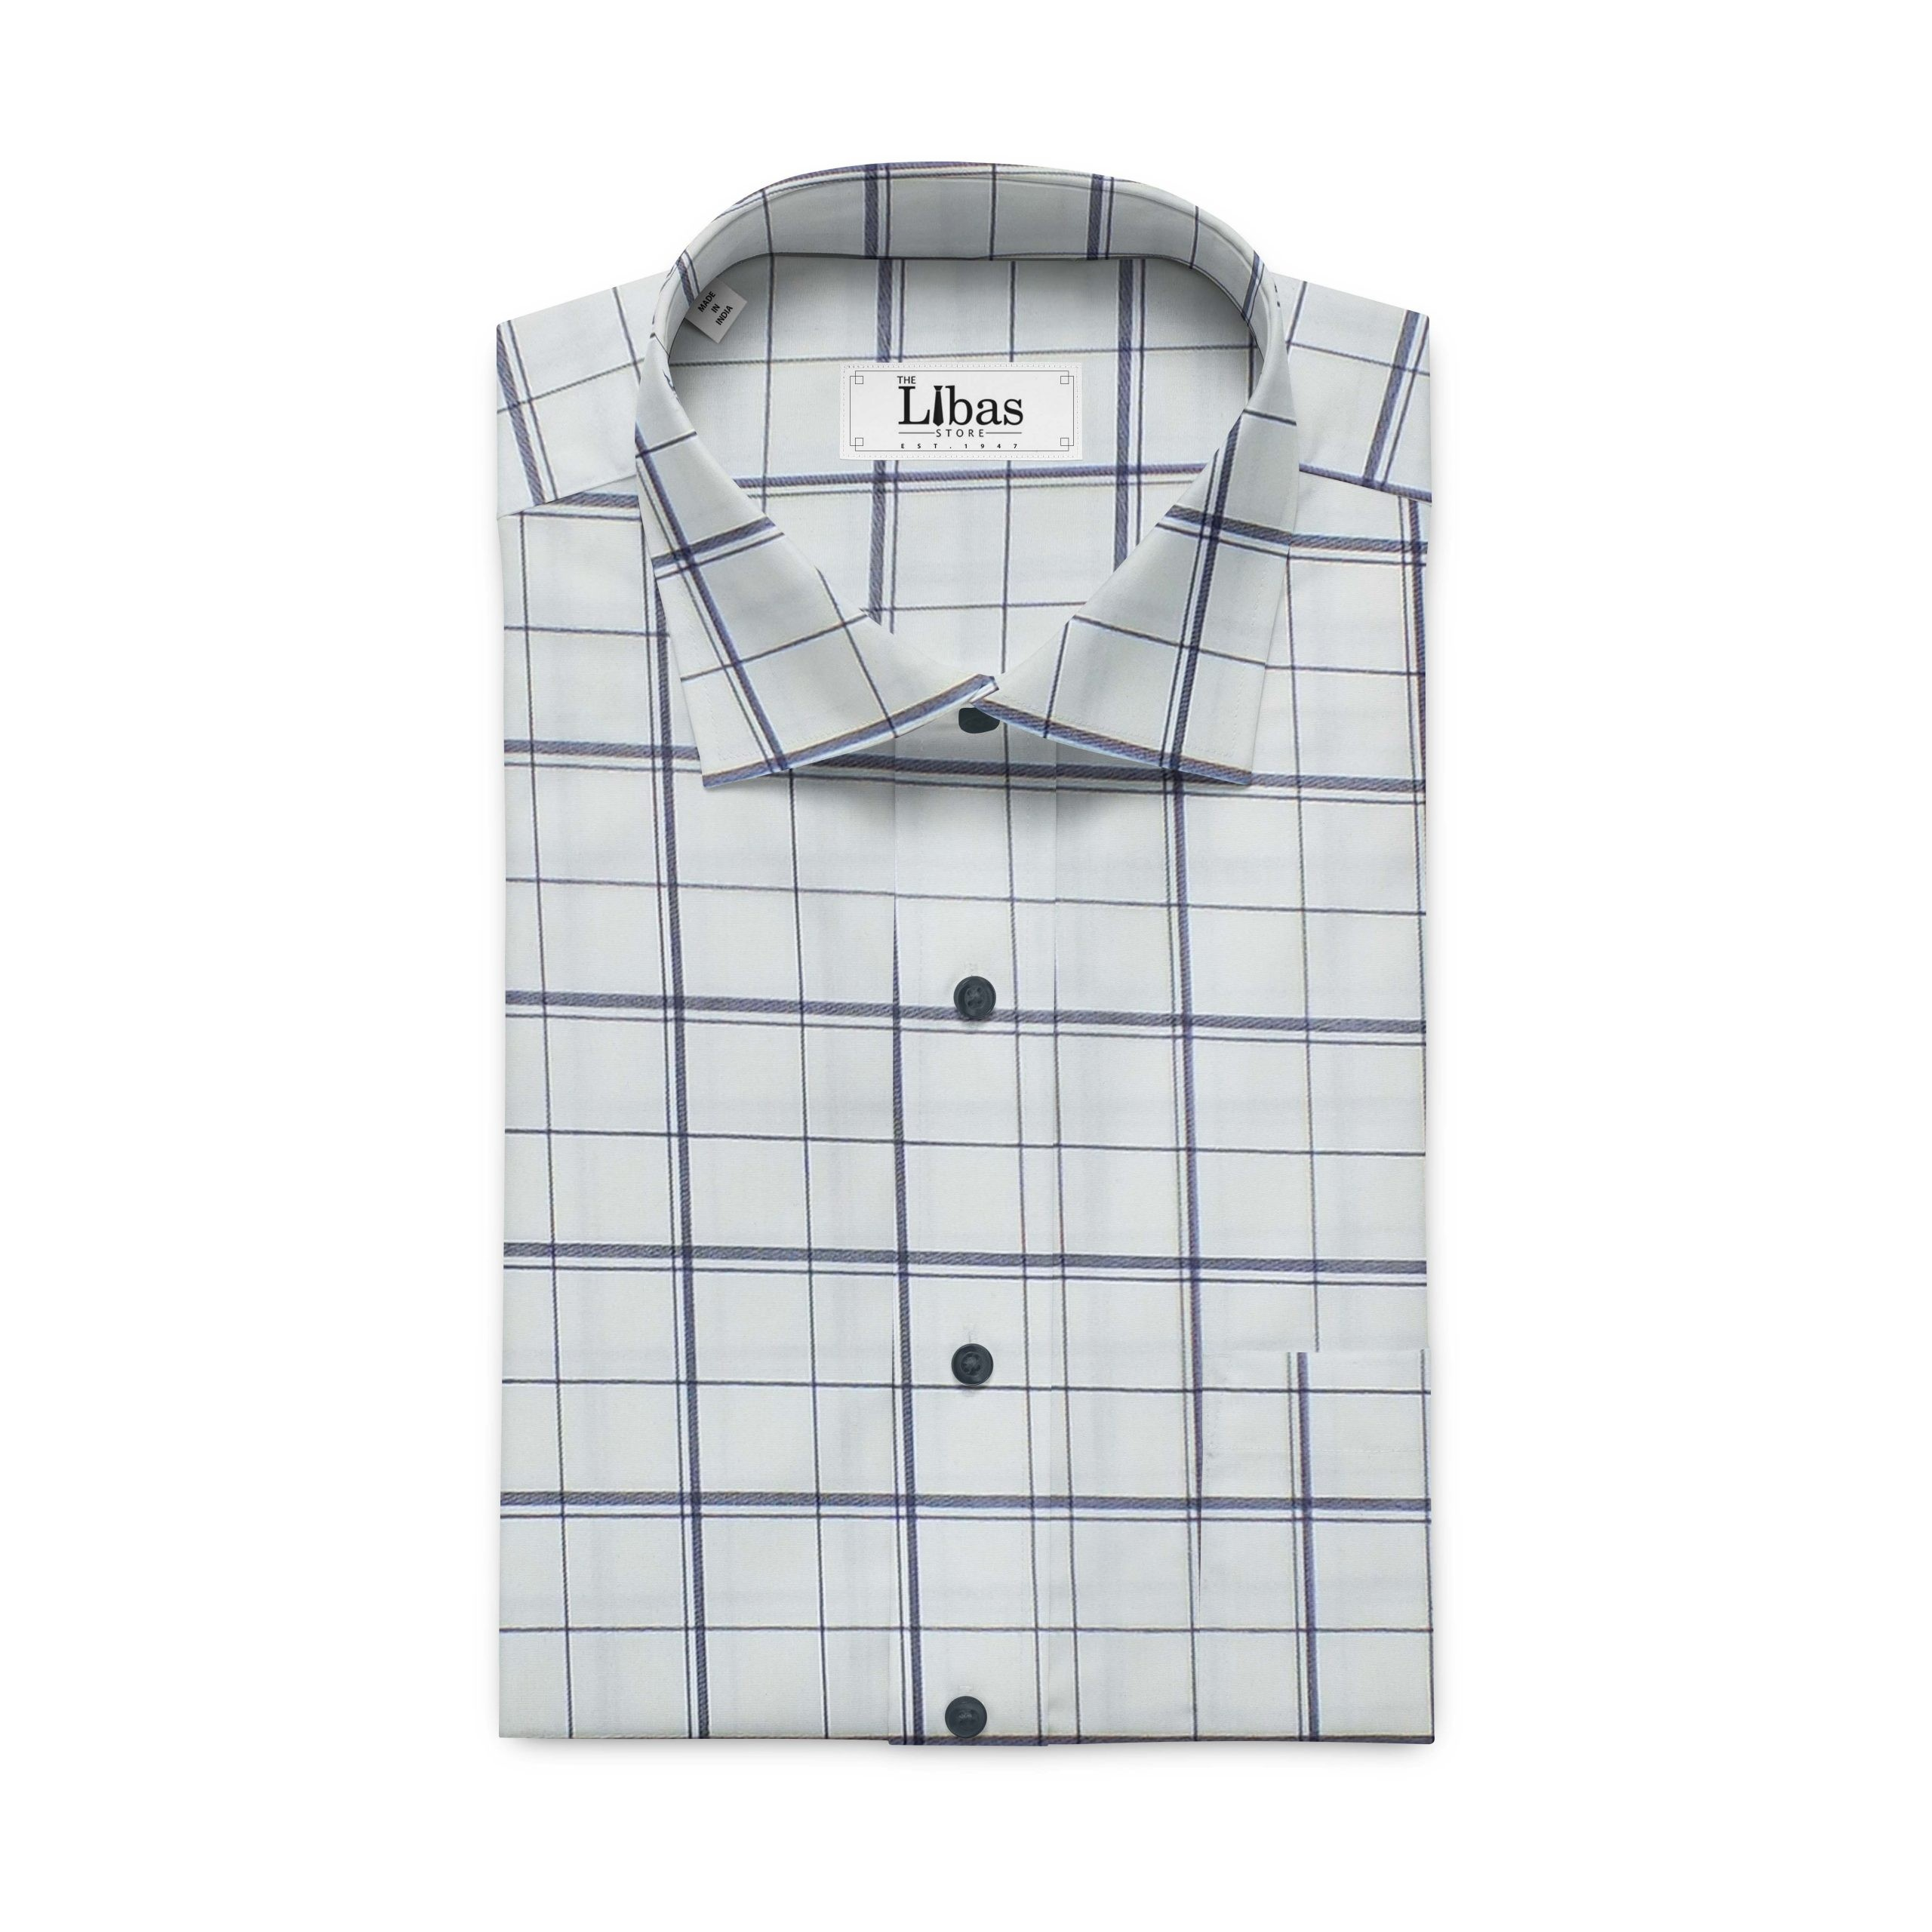 Monza Men's Cream & Blue Broad Check Cotton Shirt Fabric